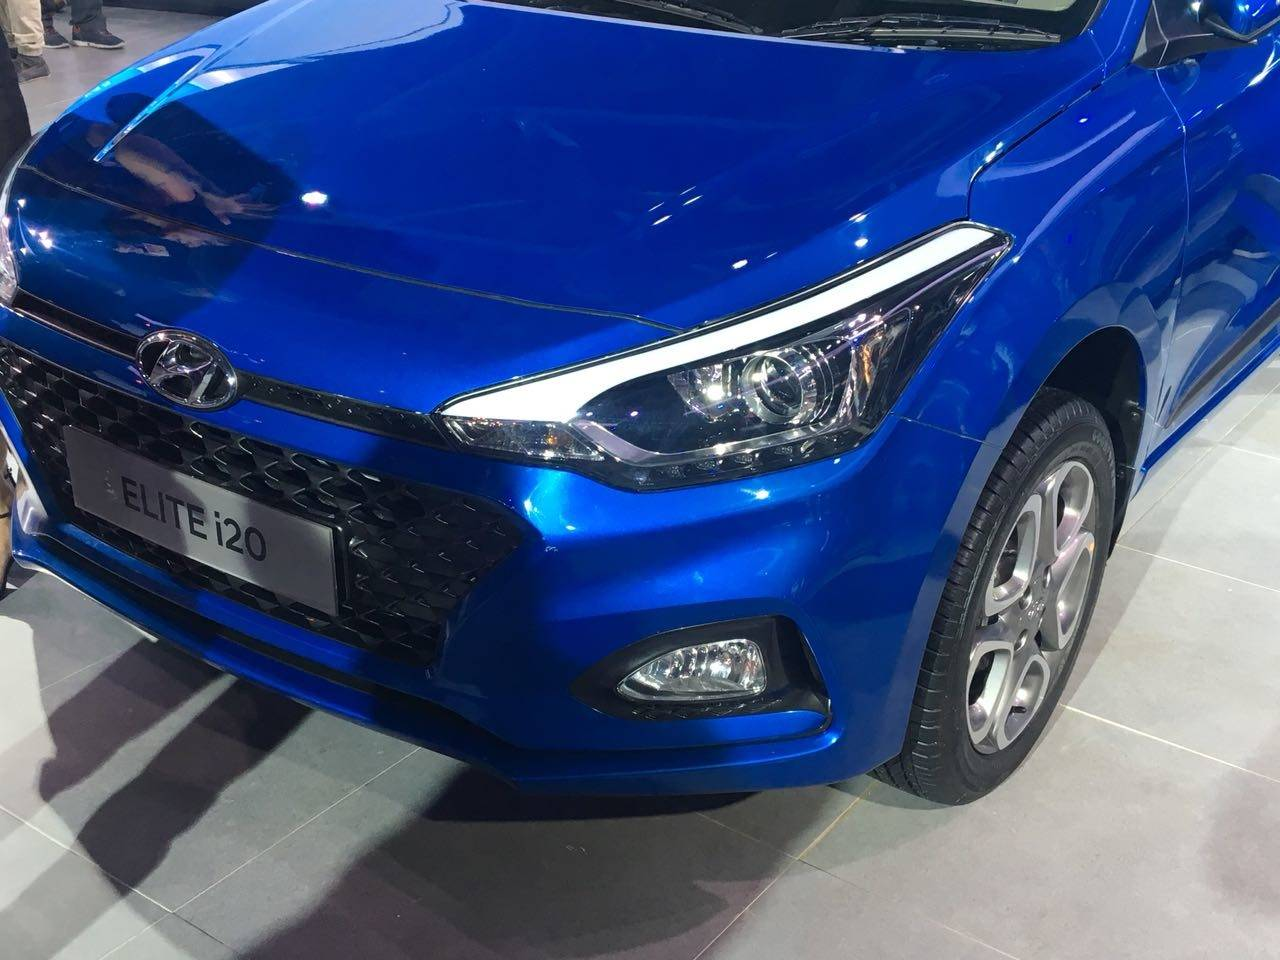 Hyundai Motor India Autoexpo2018 Hyundai Motor India To Launch 9